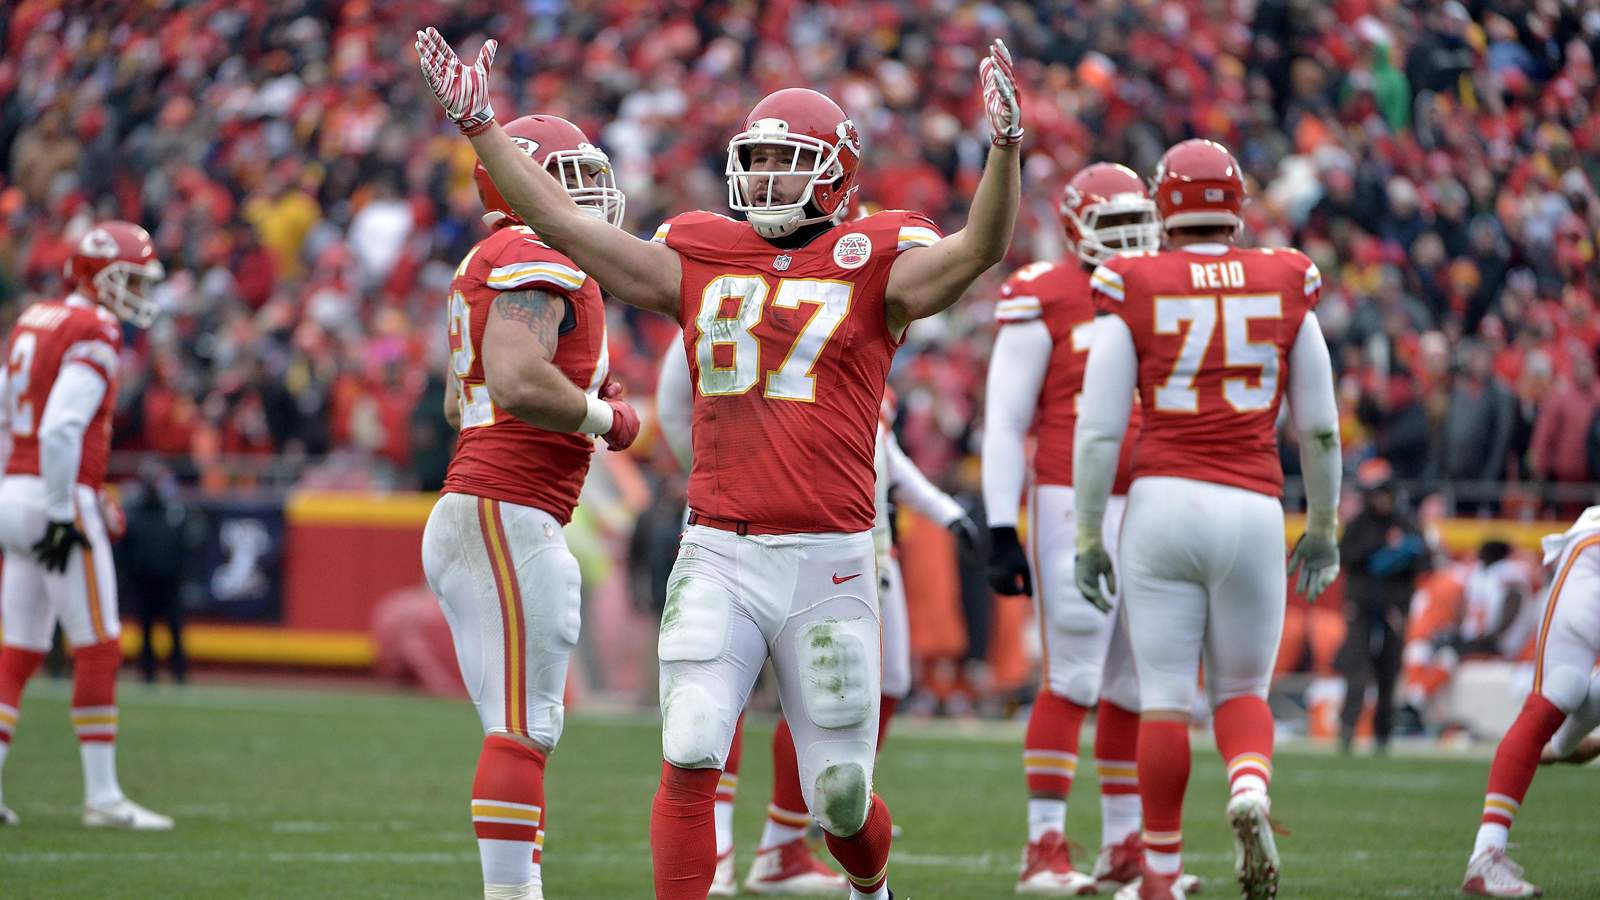 Chiefs hit Oakland with franchise history, AFC West title in play